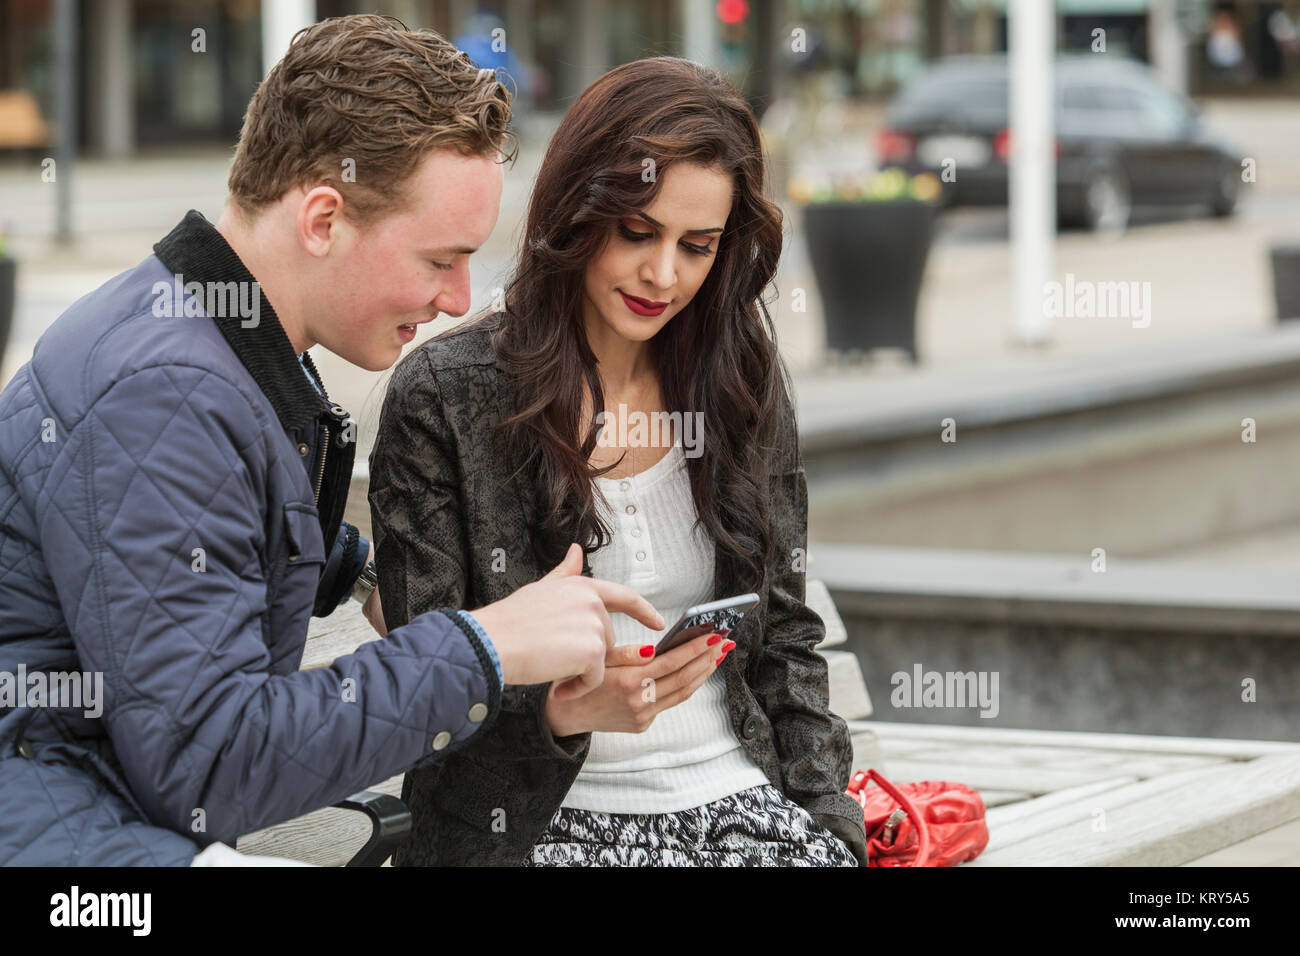 Couple looking at a smart phone in Blekinge, Sweden - Stock Image